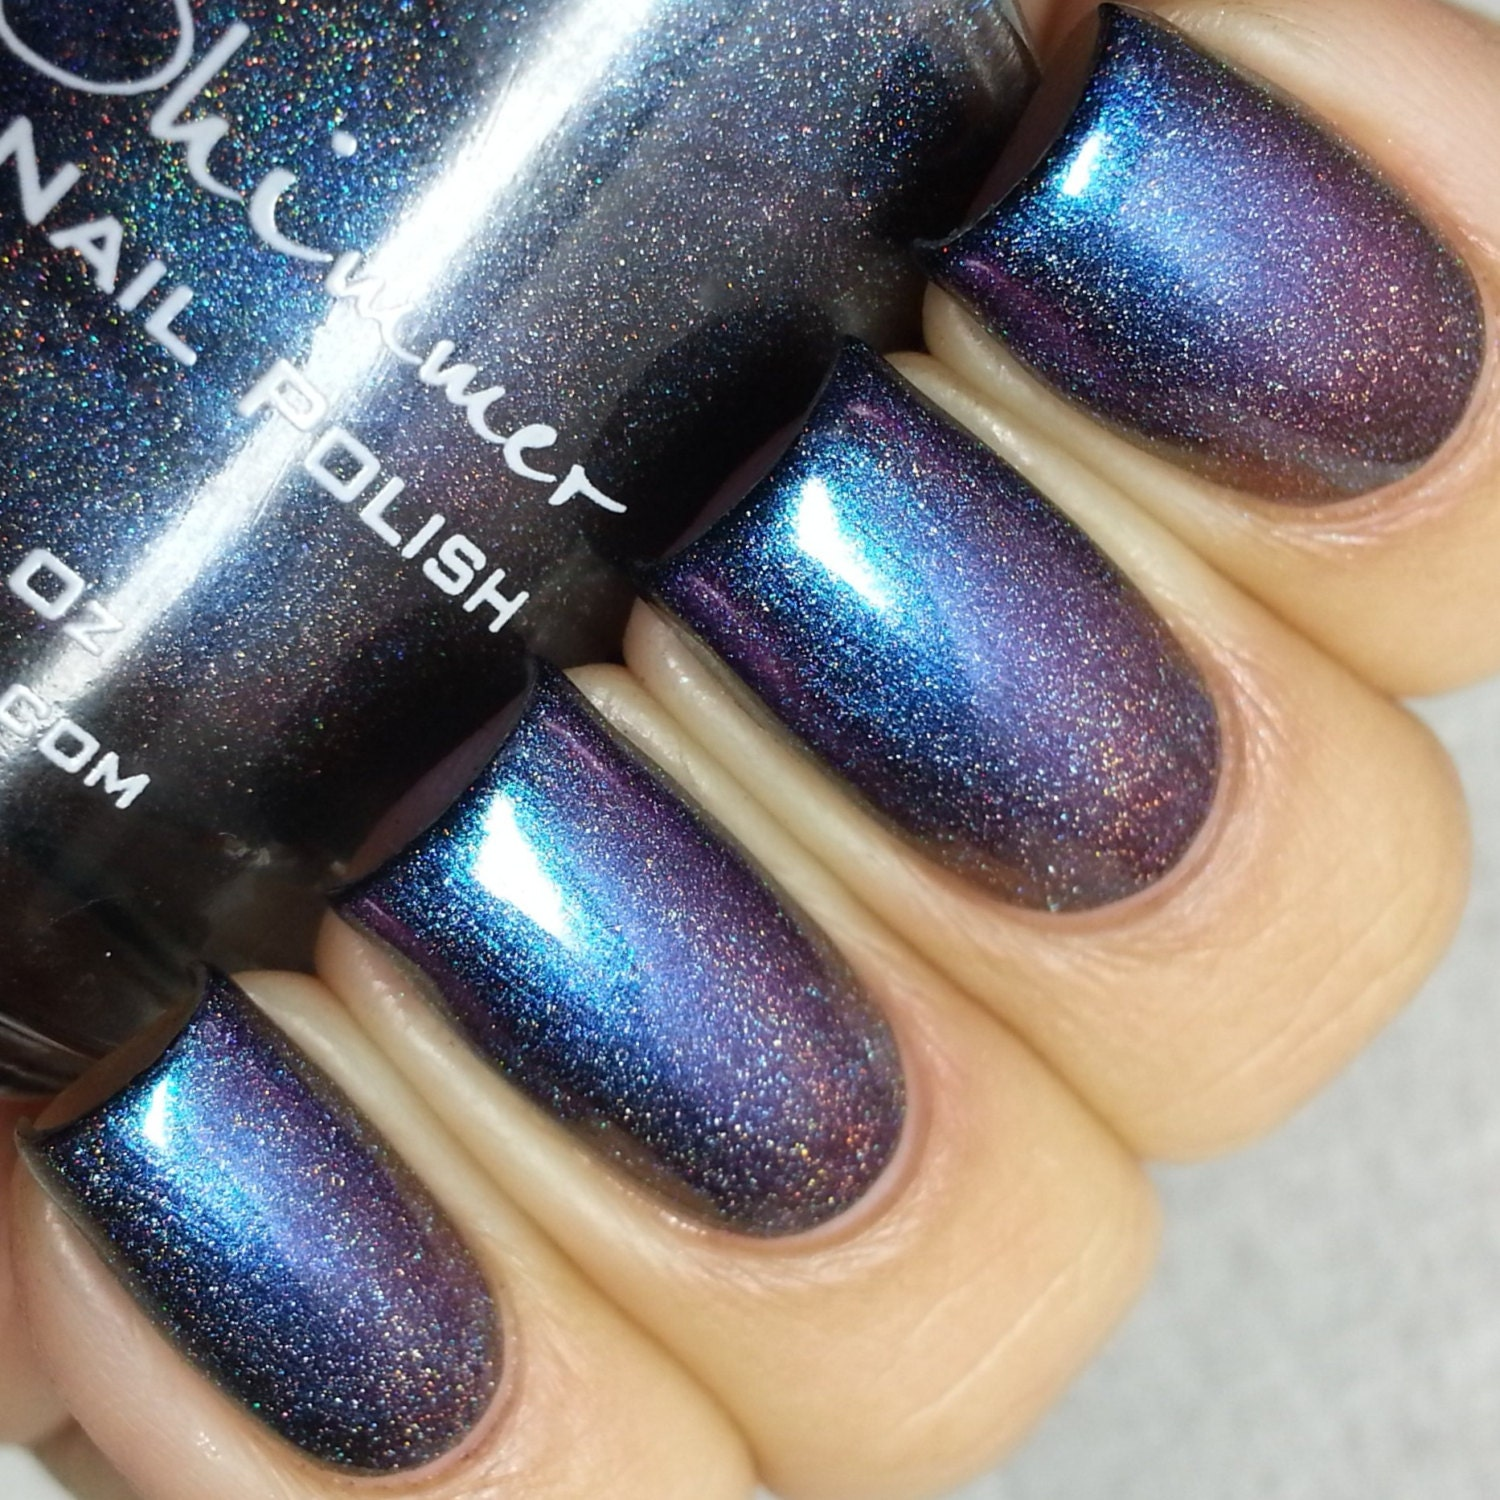 Rollin' With The Chromies Multichrome Holographic Color